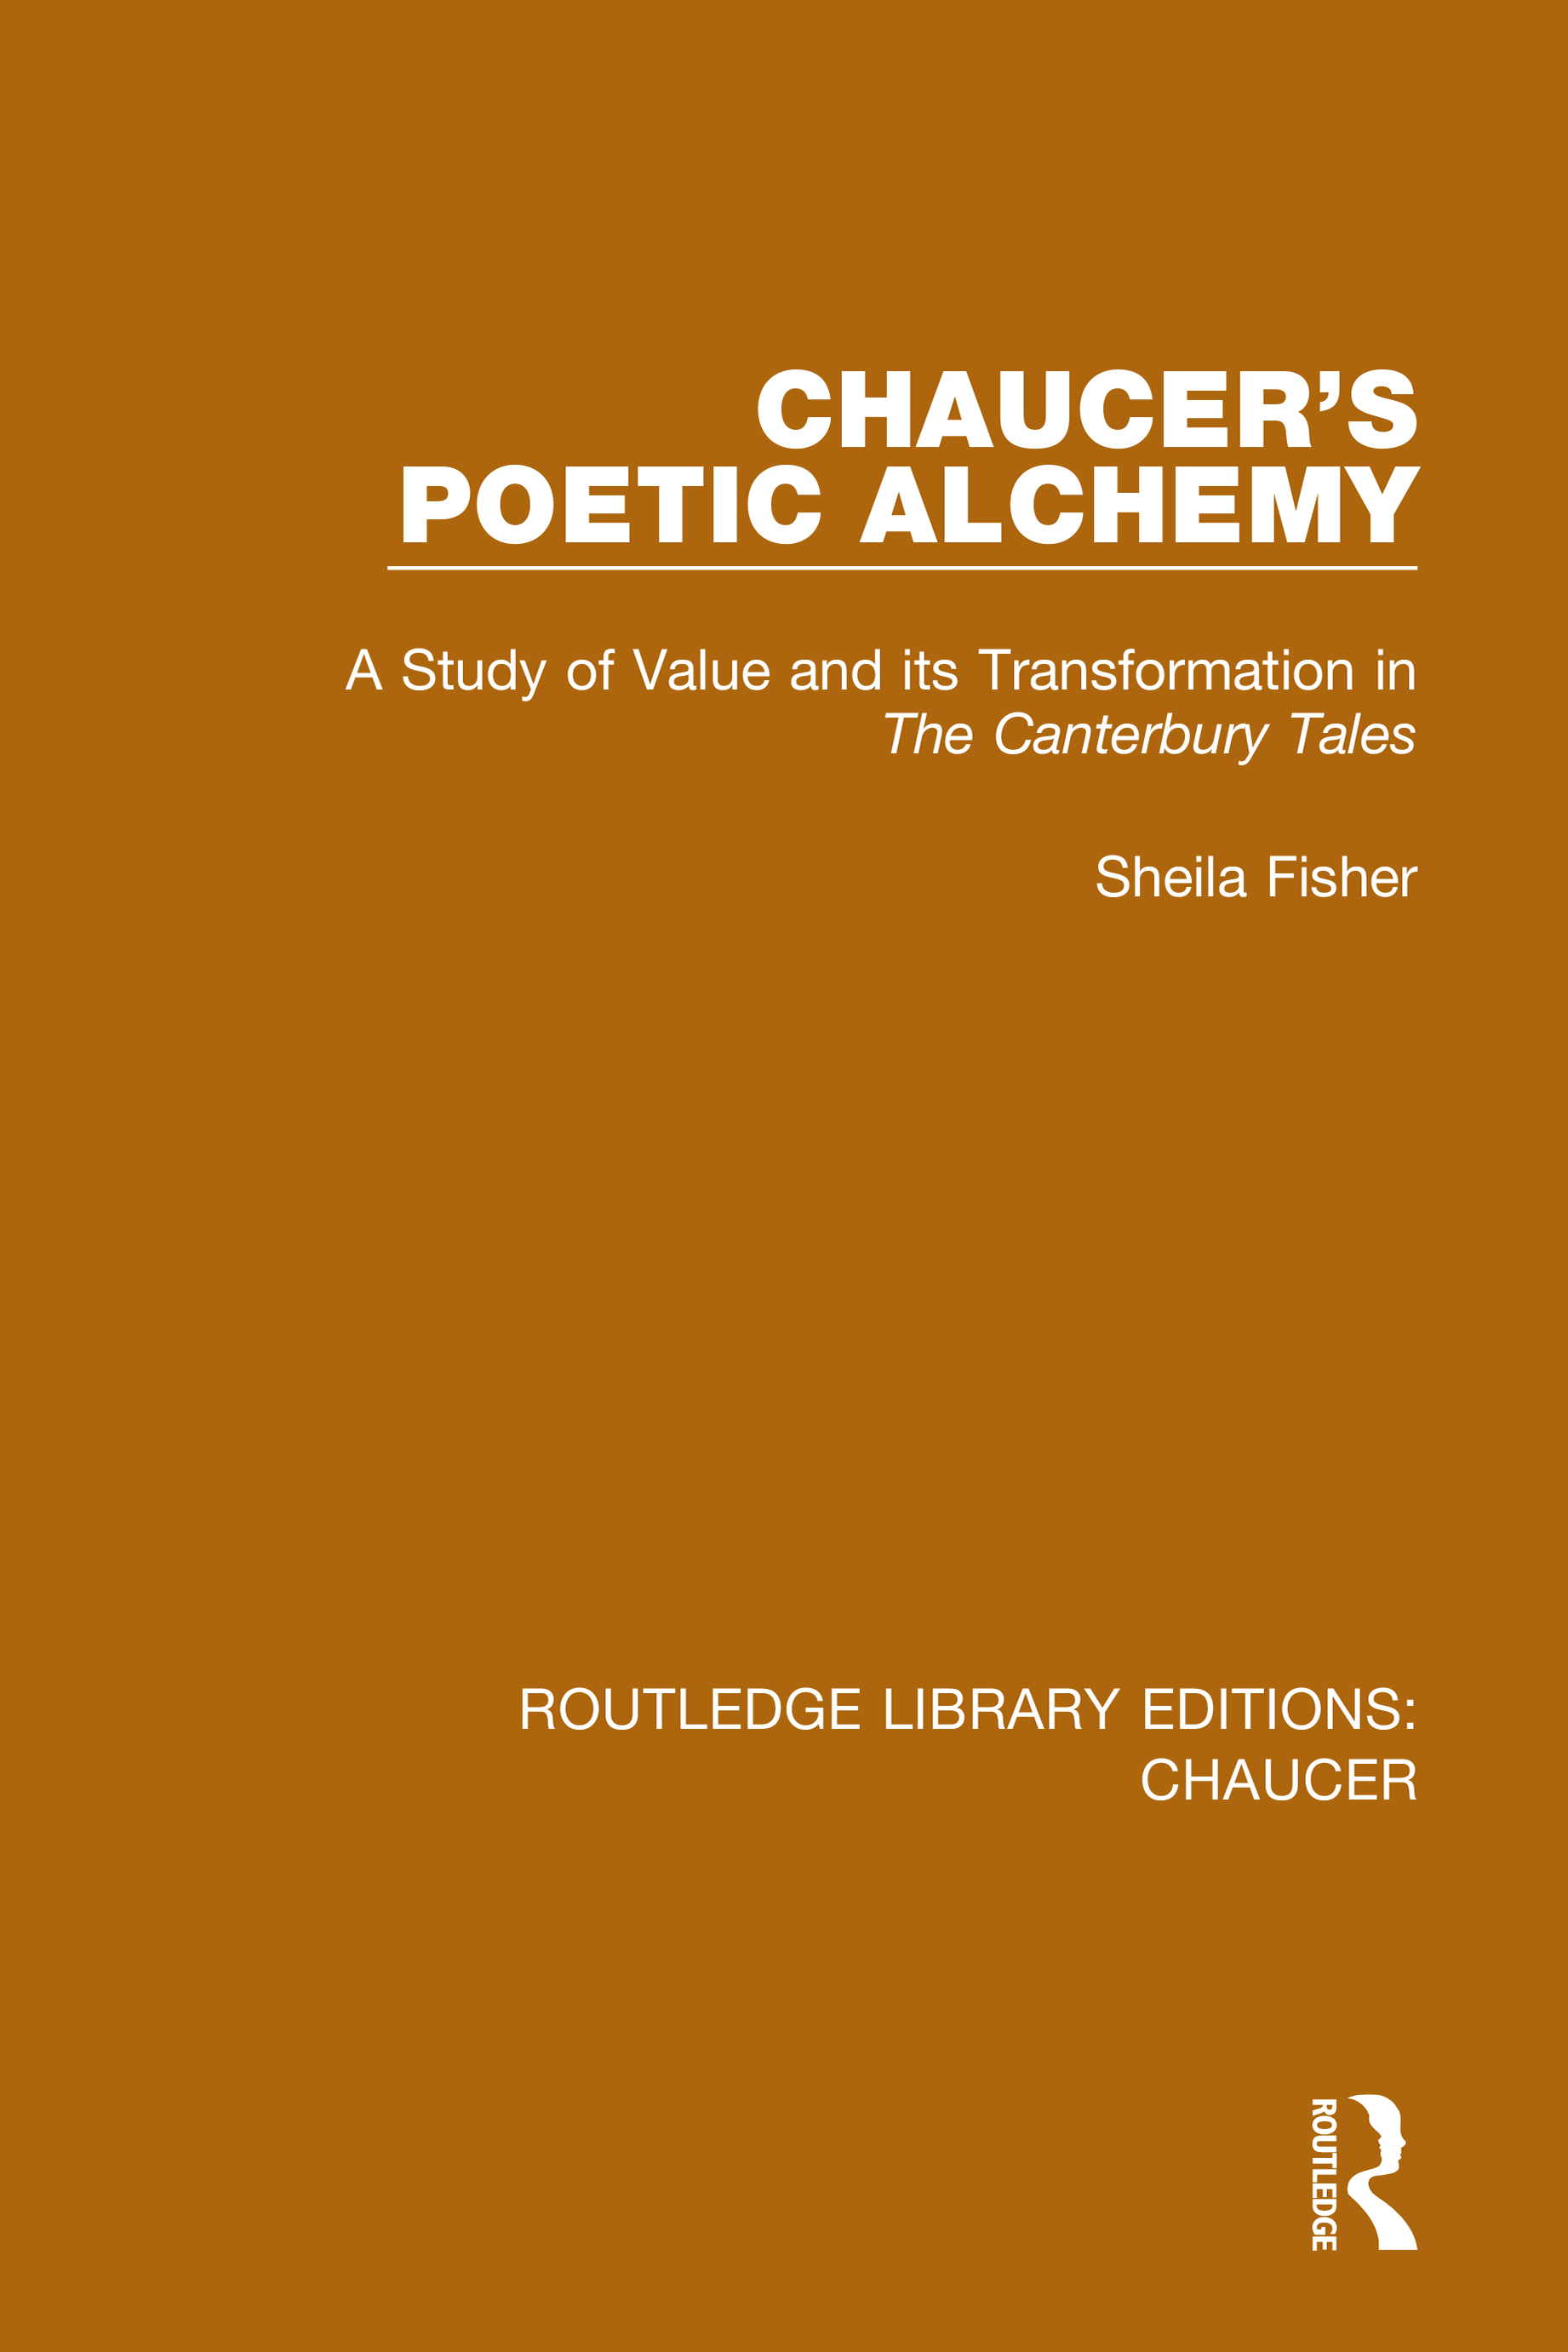 Chaucer's Poetic Alchemy: A Study of Value and its Transformation in The Canterbury Tales book cover